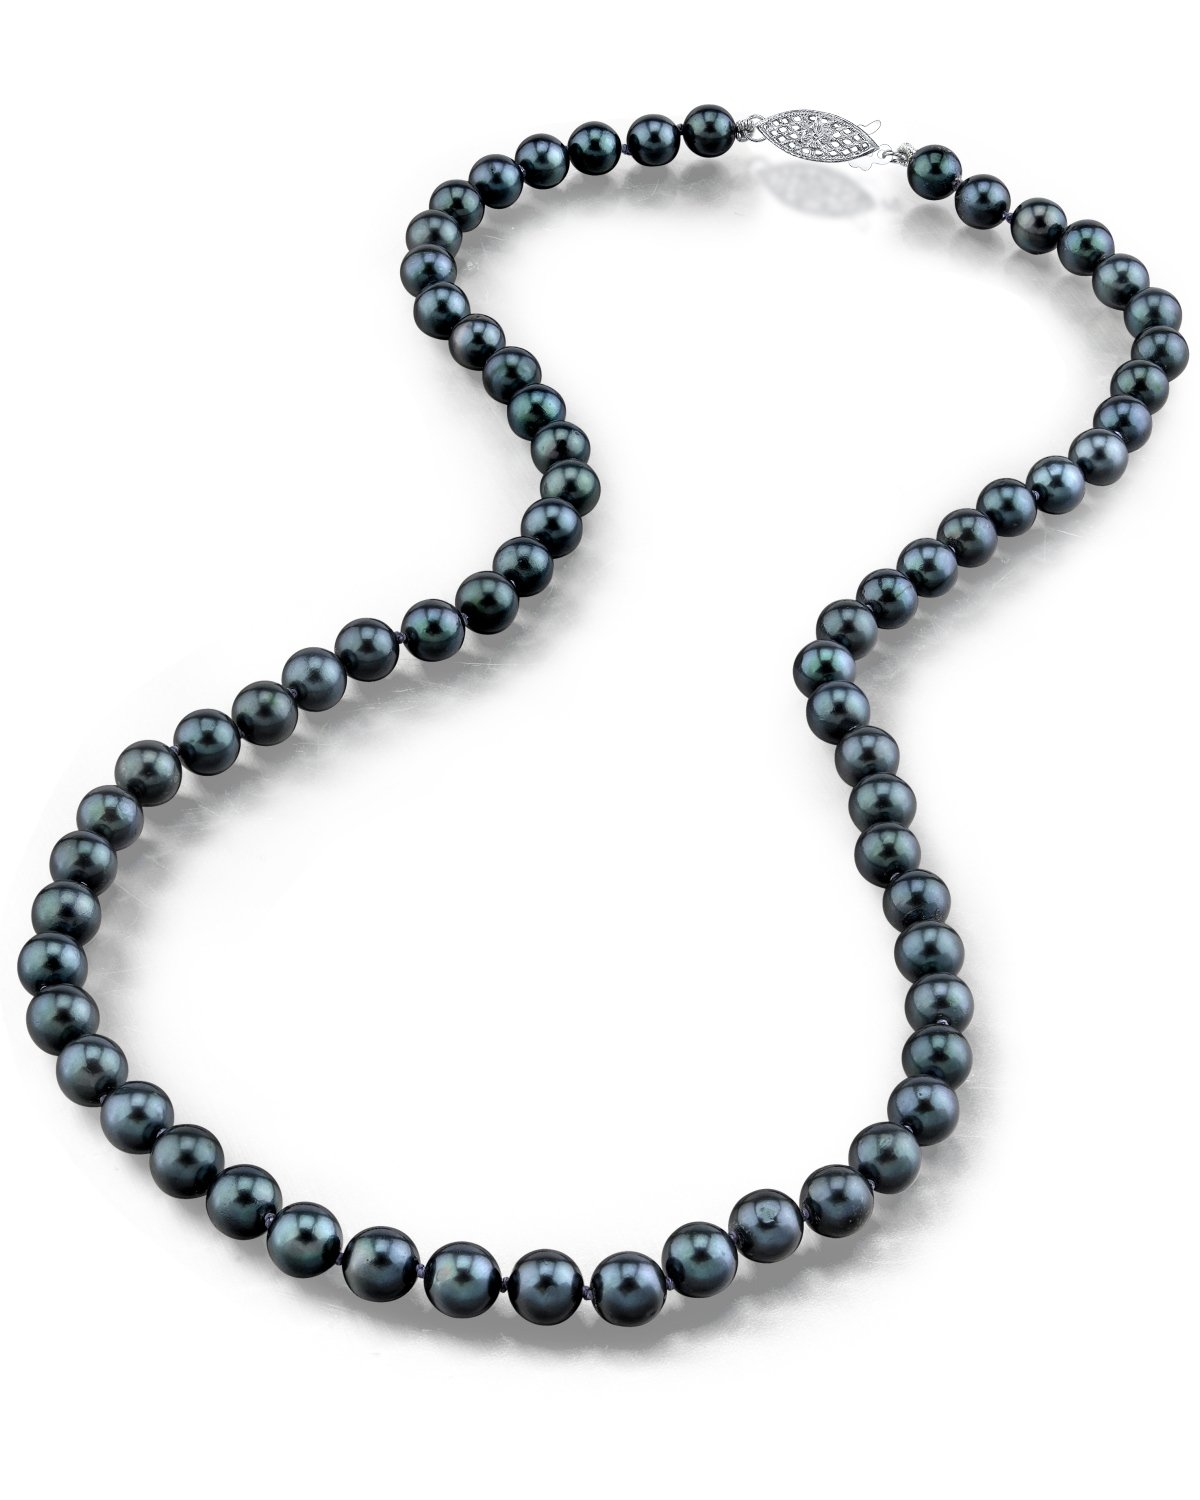 14K Gold 6.5-7.0mm Black Akoya Cultured Pearl Necklace - AA+ Quality, 16'' Choker Length